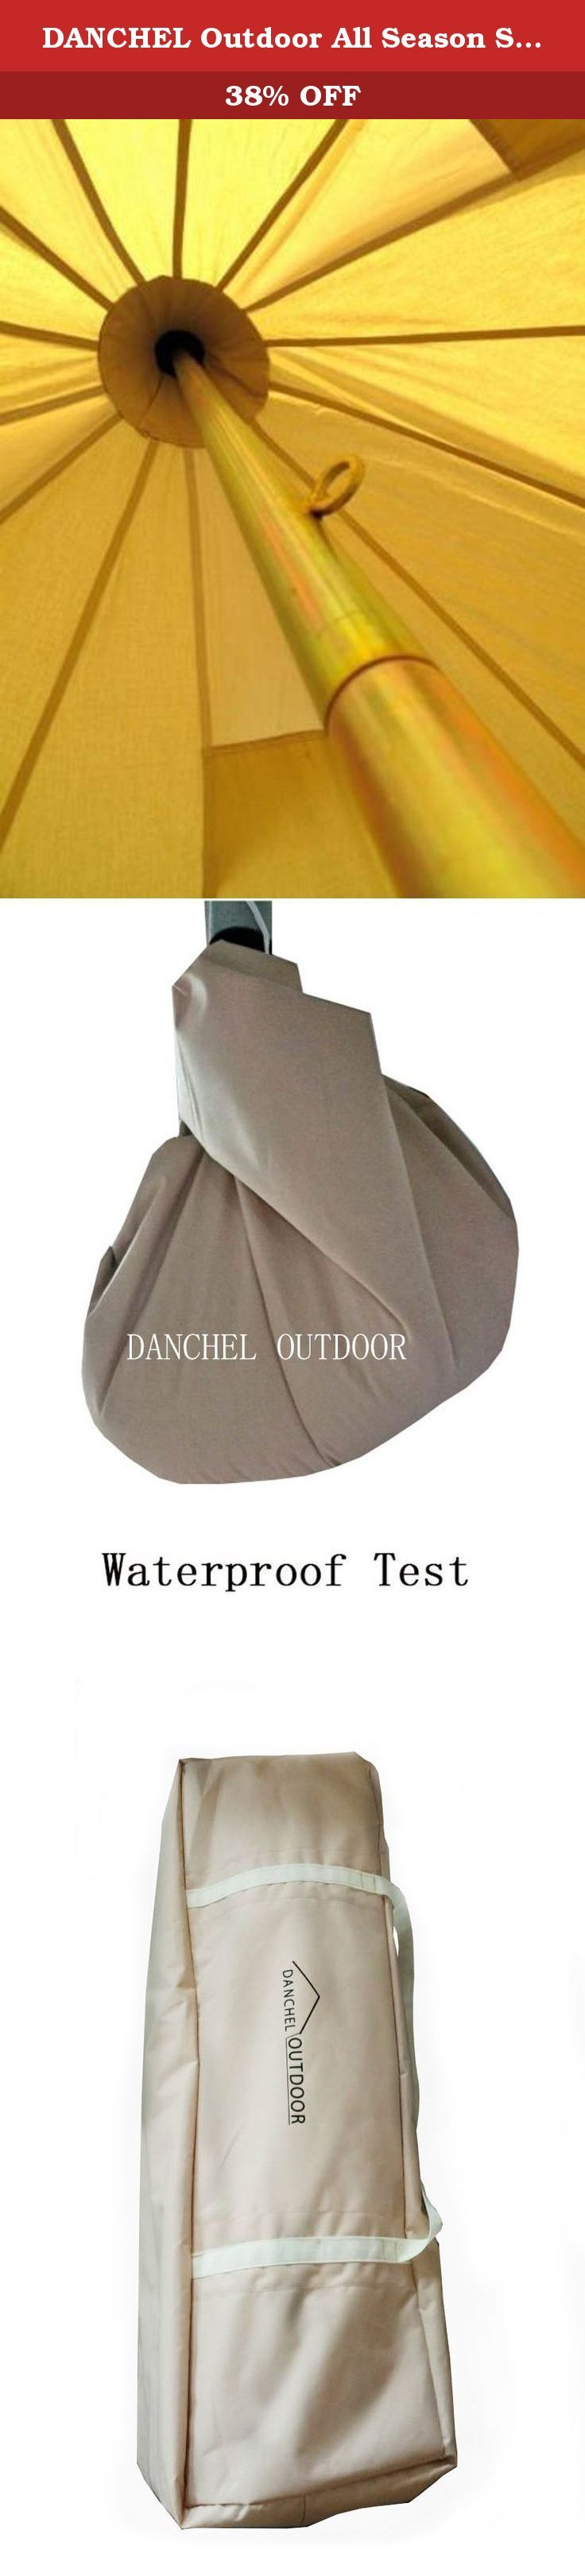 DANCHEL Outdoor All Season Sun Shade Cotton Canvas Bell Tents, Size 5M/ 16.4 Feet wit Carry Bag and Net. Feature of bell tent MATERIAL : 100% 285GSM cotton fabric, strong anti-ultraviolet, warm in winter and cool in summer. The fabric 1500MM waterproof treatment on the surface, khiki coloured; 540gsm thick PVC in bottom WINDOW and DOOR : comes with 4 zipped side windows and 4 air vents with mosquito netting on the window?for air flowing inside and outside. And come with one zipped door…